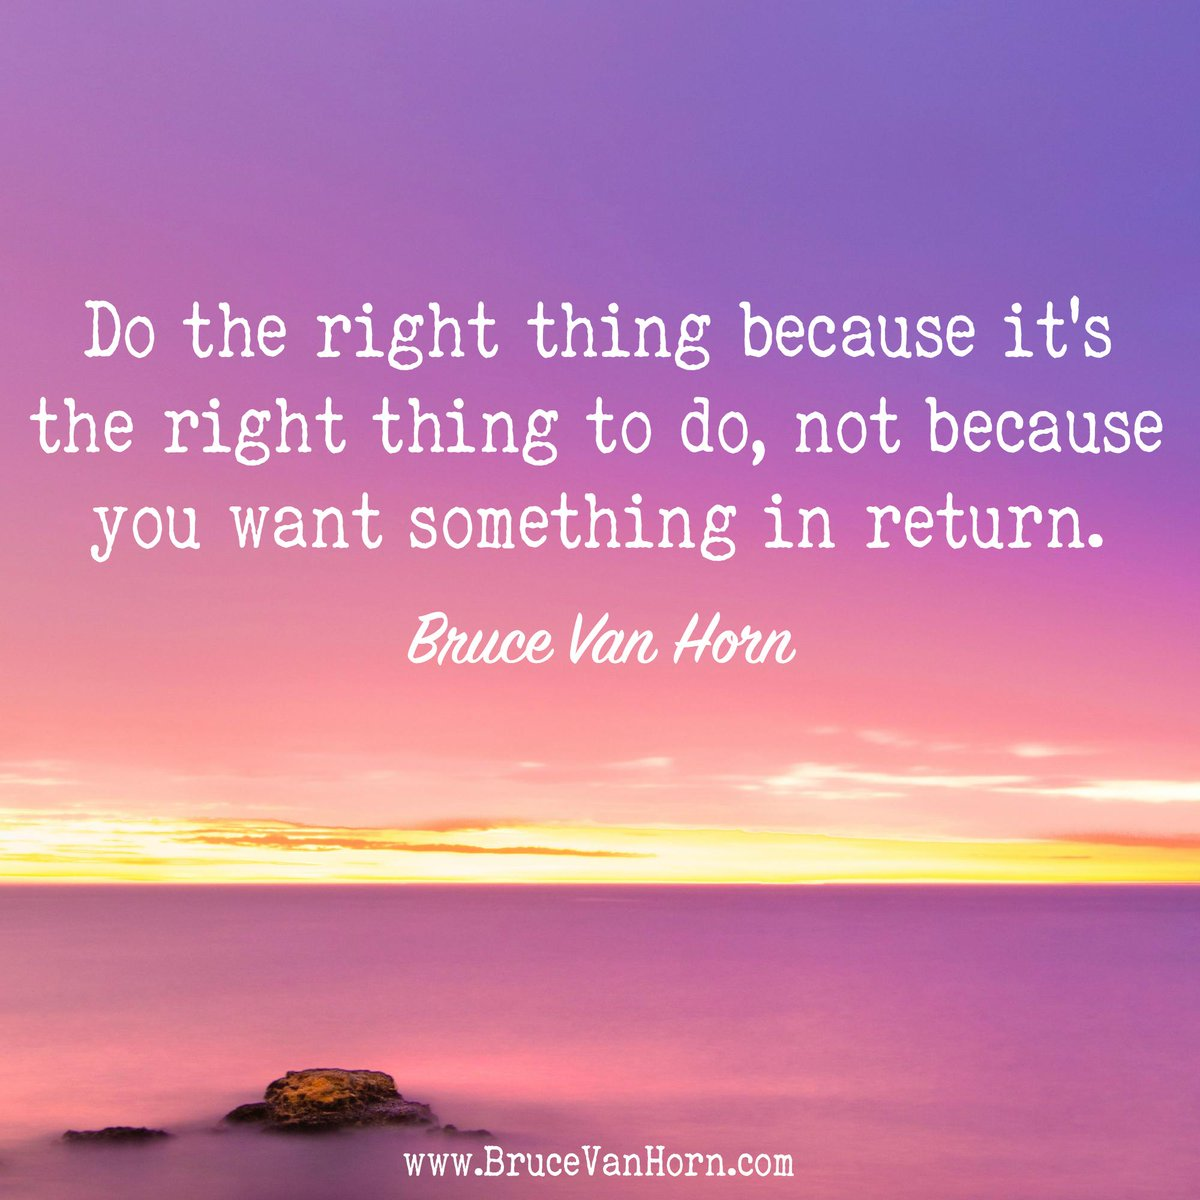 Do the right thing because its the right thing to do, not because you want something in return. #Leadership #Success